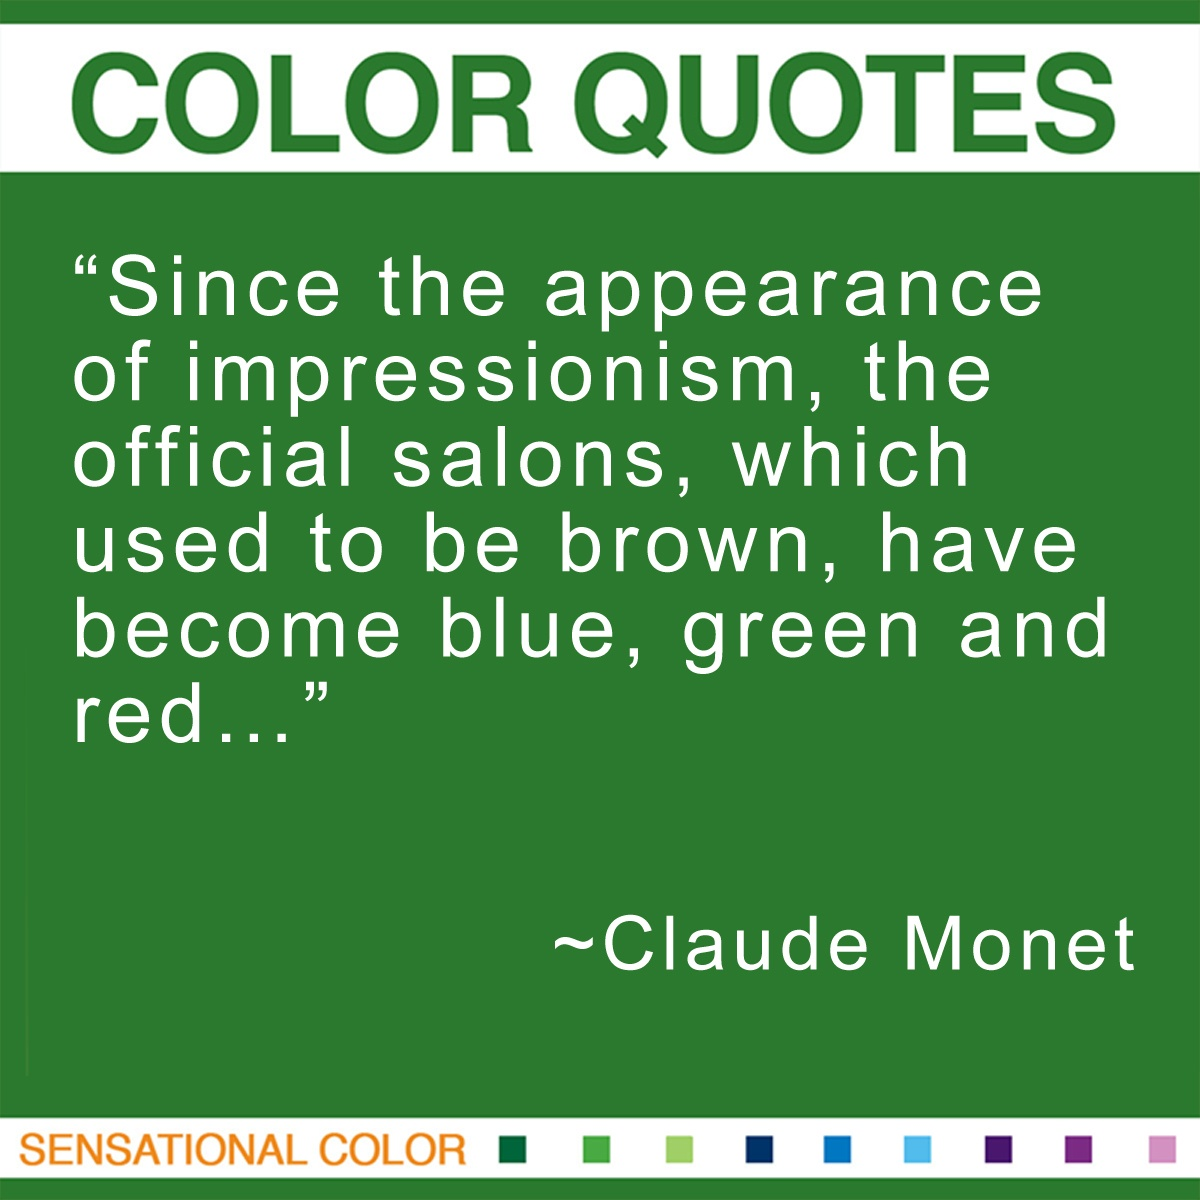 """Since the appearance of impressionism, the official salons, which used to be brown,have become blue, green and red…"" - Claude Monet"